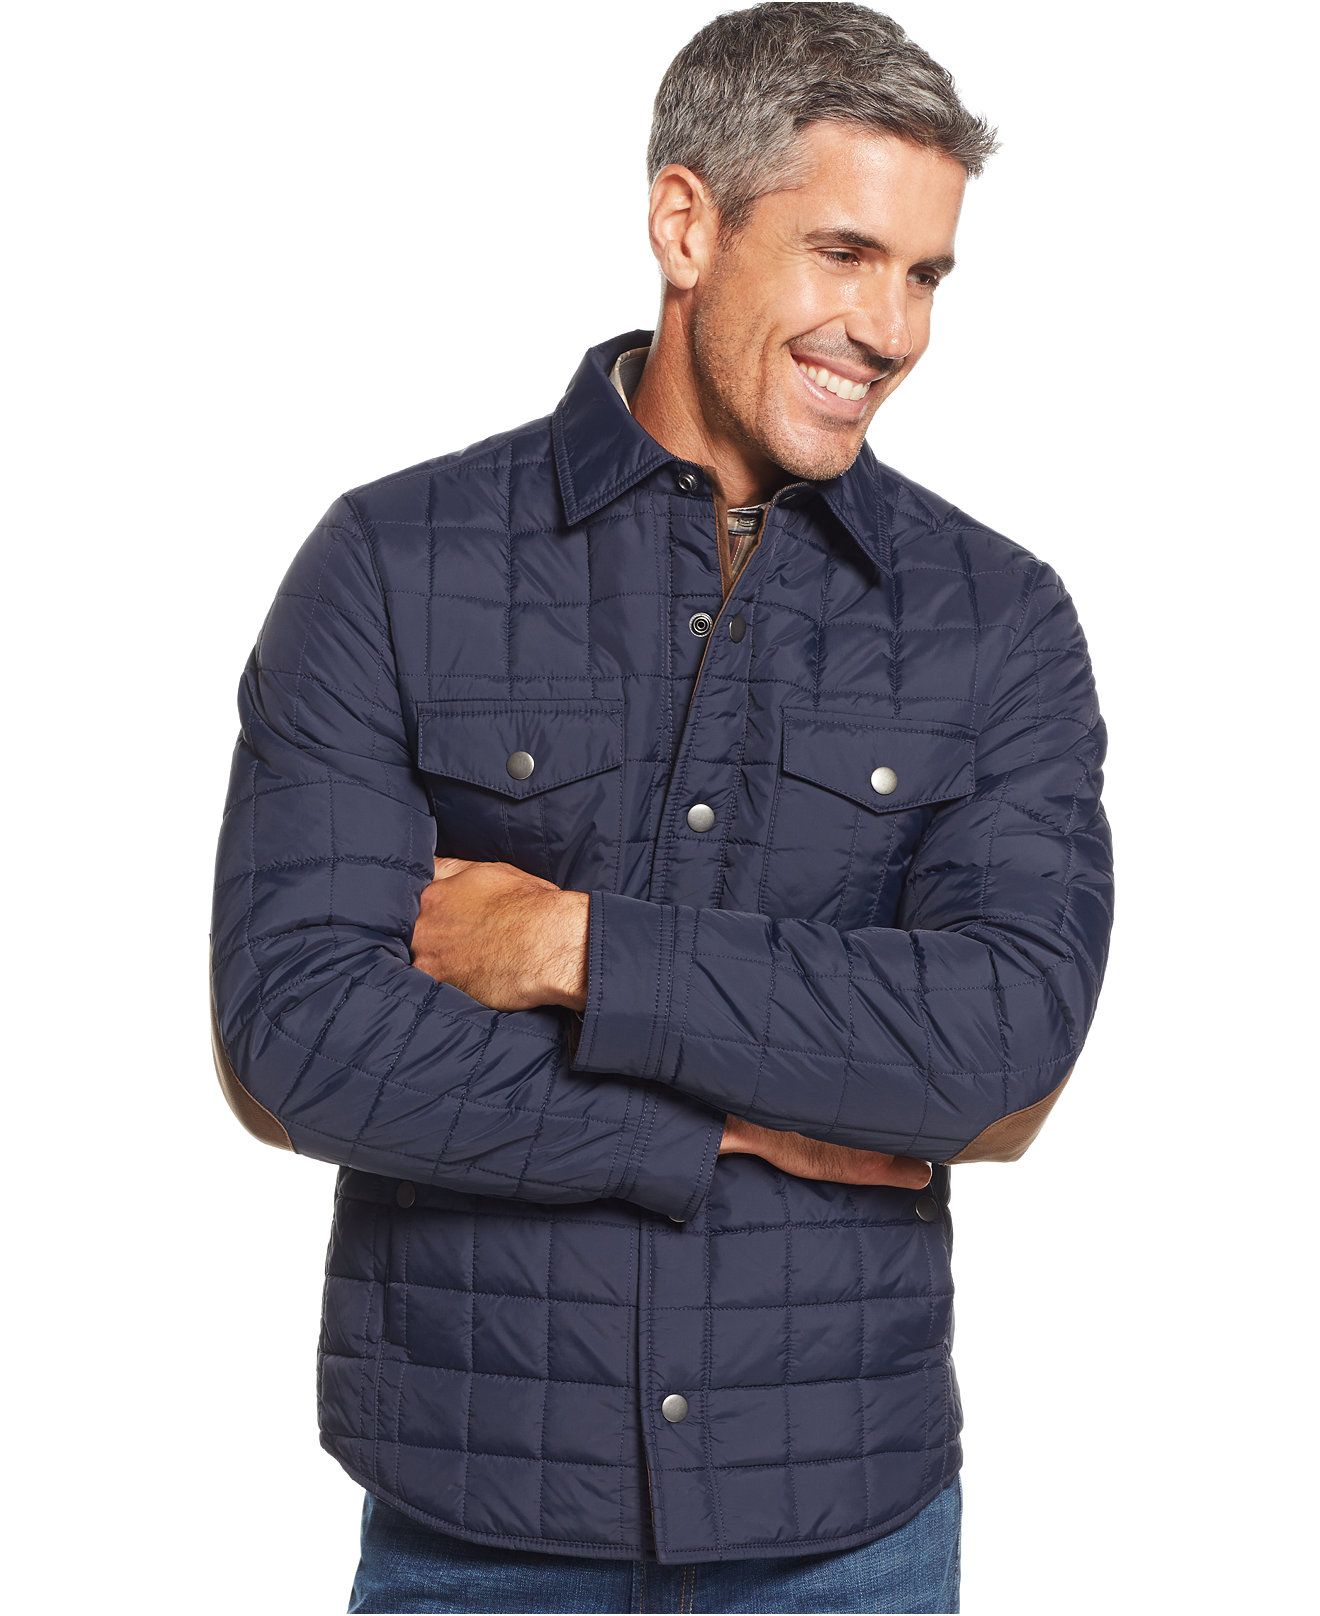 tasso elba quilted shirt jacket coats jackets men macy 39 s mens jackets pinterest. Black Bedroom Furniture Sets. Home Design Ideas